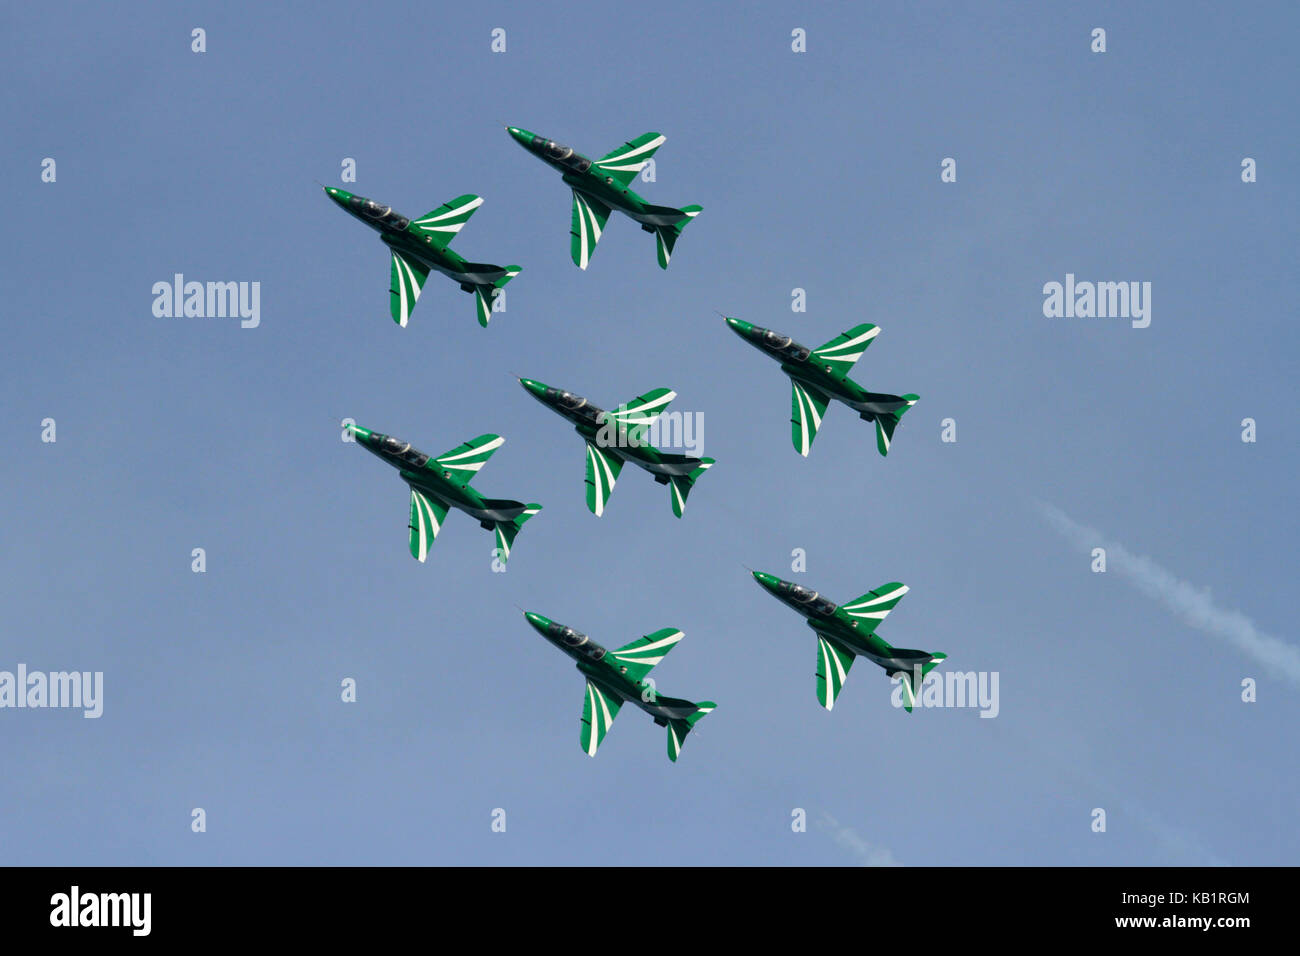 The Saudi Hawks aerobatic display team of the Royal Saudi Air Force flying in diamond formation during an air display - Stock Image